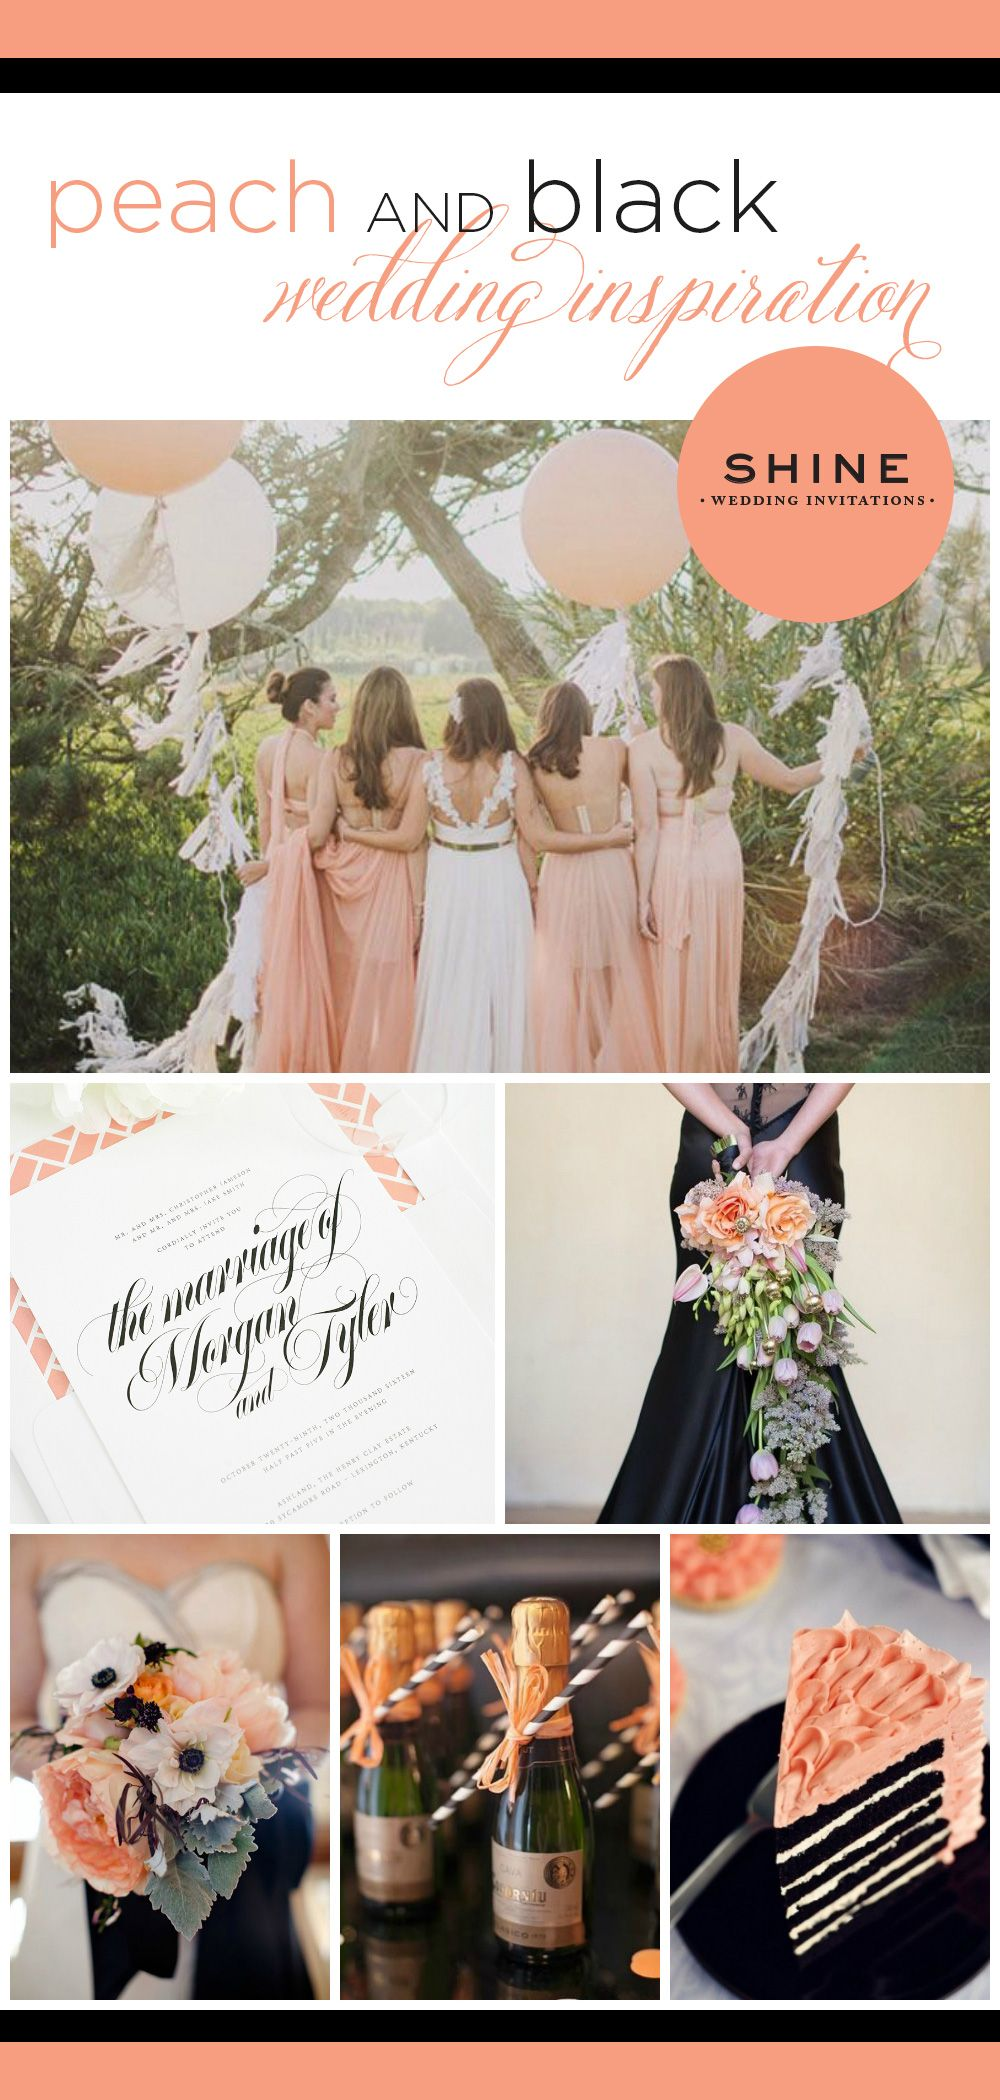 Wedding Inspiration In Peach And Black Featuring Calligraphy Names Invitations By Shine: Black And Peach Wedding Invitations At Websimilar.org